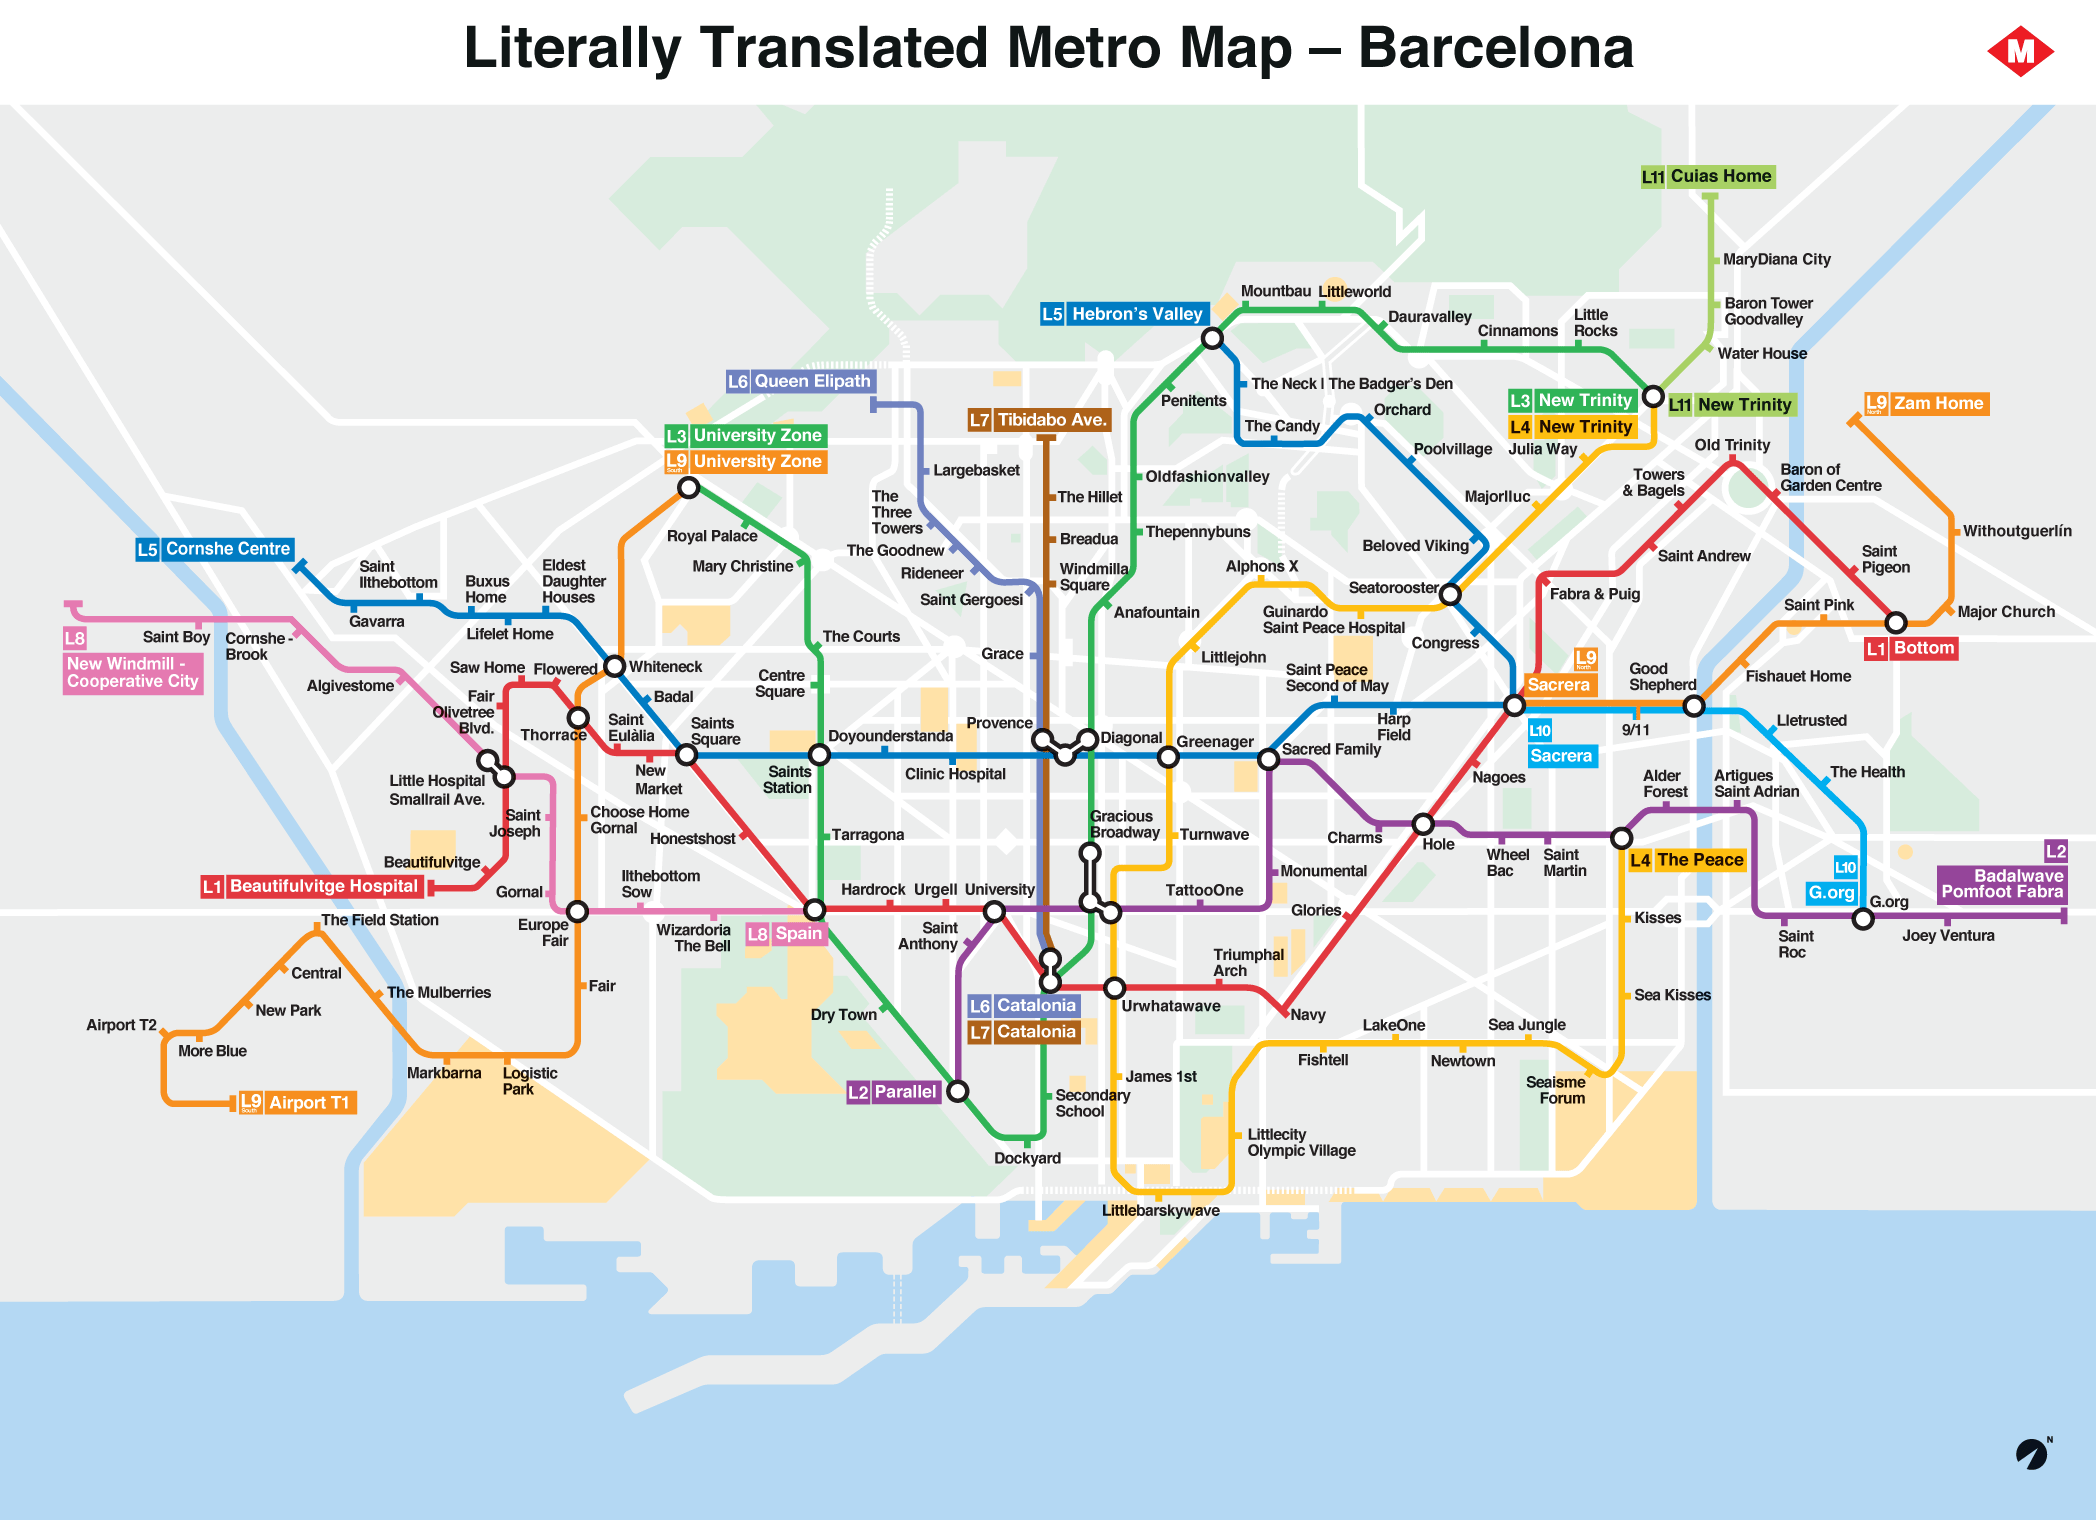 Subway Map Of Barcelona Spain.Literally Translated Metro Map Barcelona X Post From R Barcelona